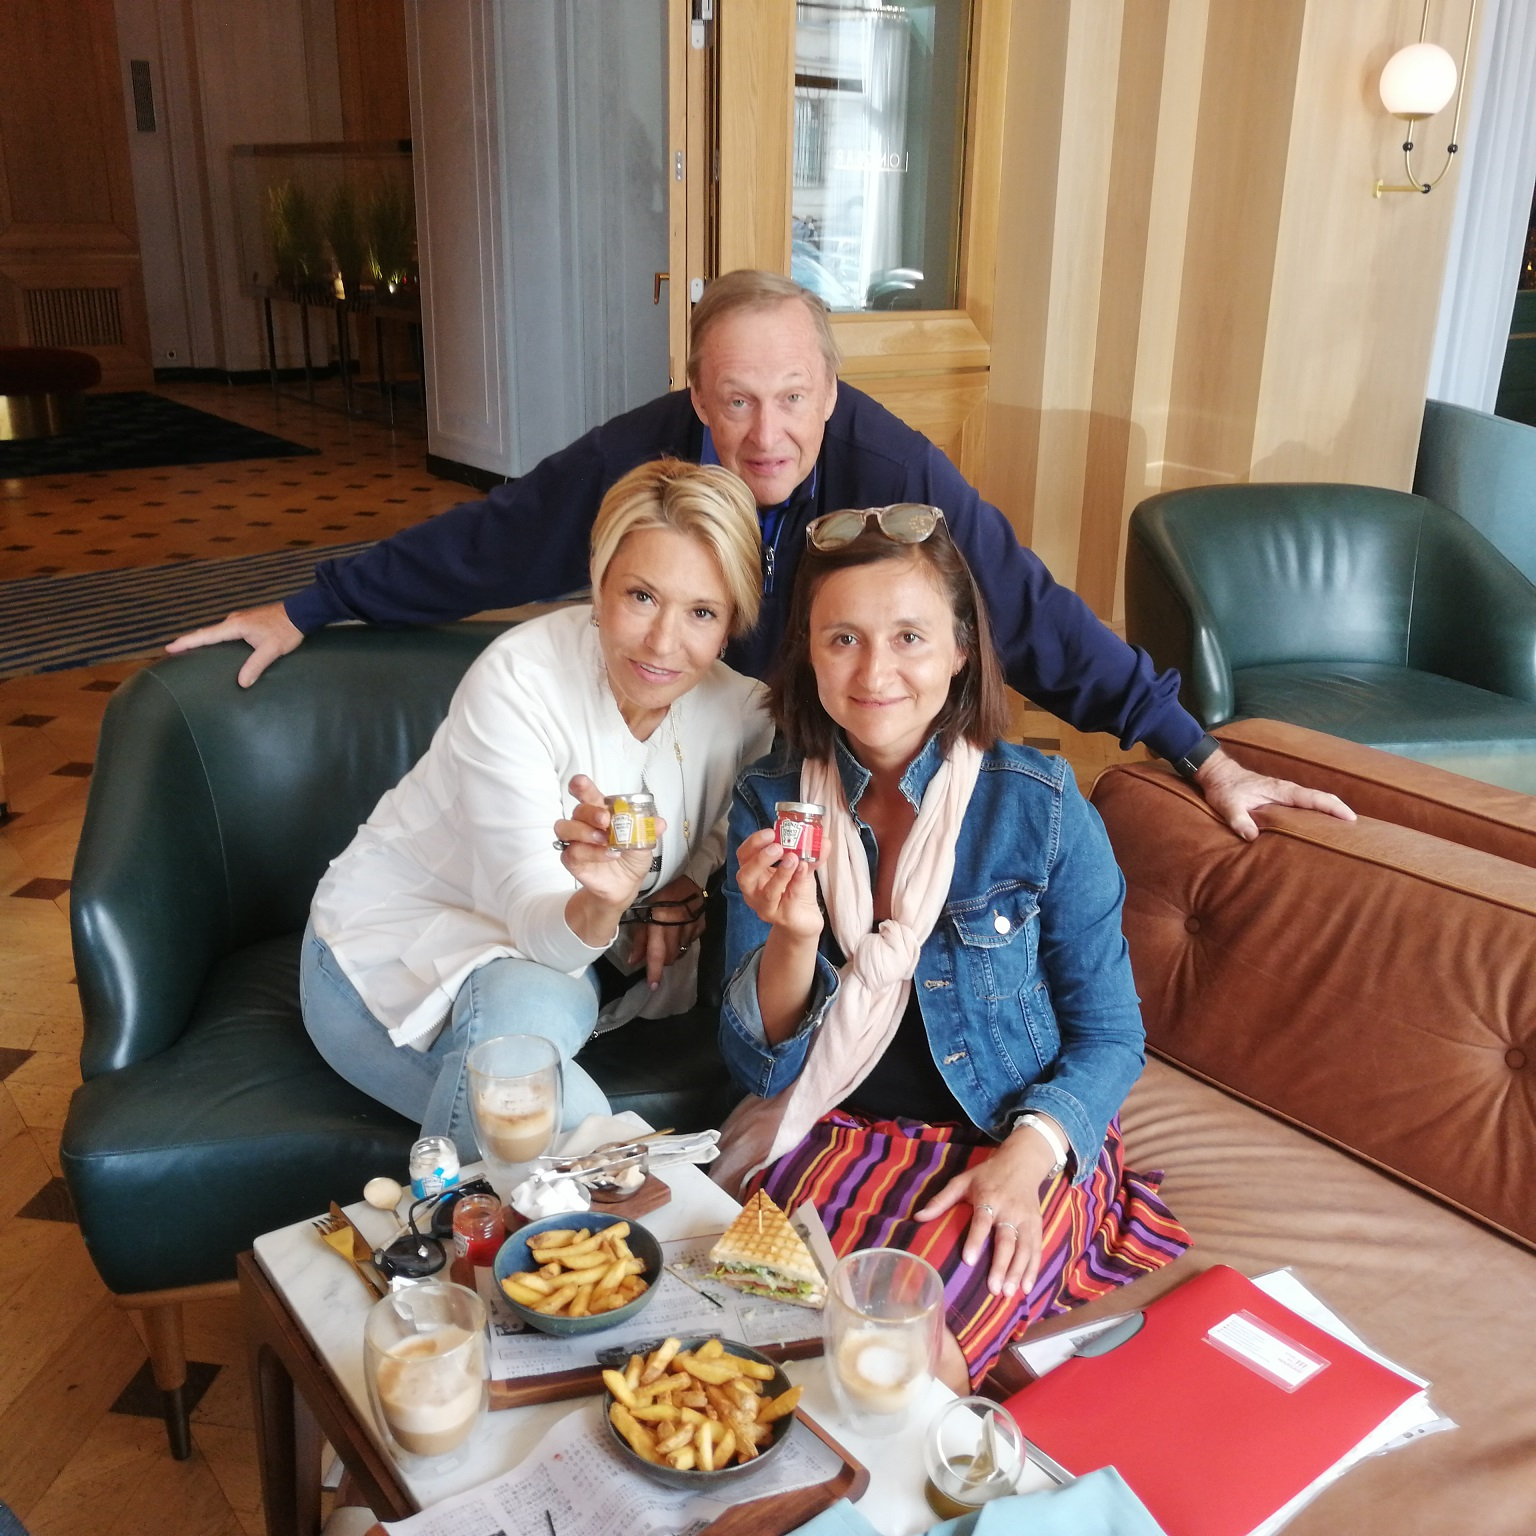 Step in Warsaw - City guide to Warsaw. A short break while sightseeing for coffee and snack with Heinz products in the hotel Raffles Europejski Warsaw. My tourists came to Warsaw from the USA, from Pennsylvania. The Heinz Company was also founded in Pennsylvania, in Pittsburgh. Warsaw, 13.09.2019.